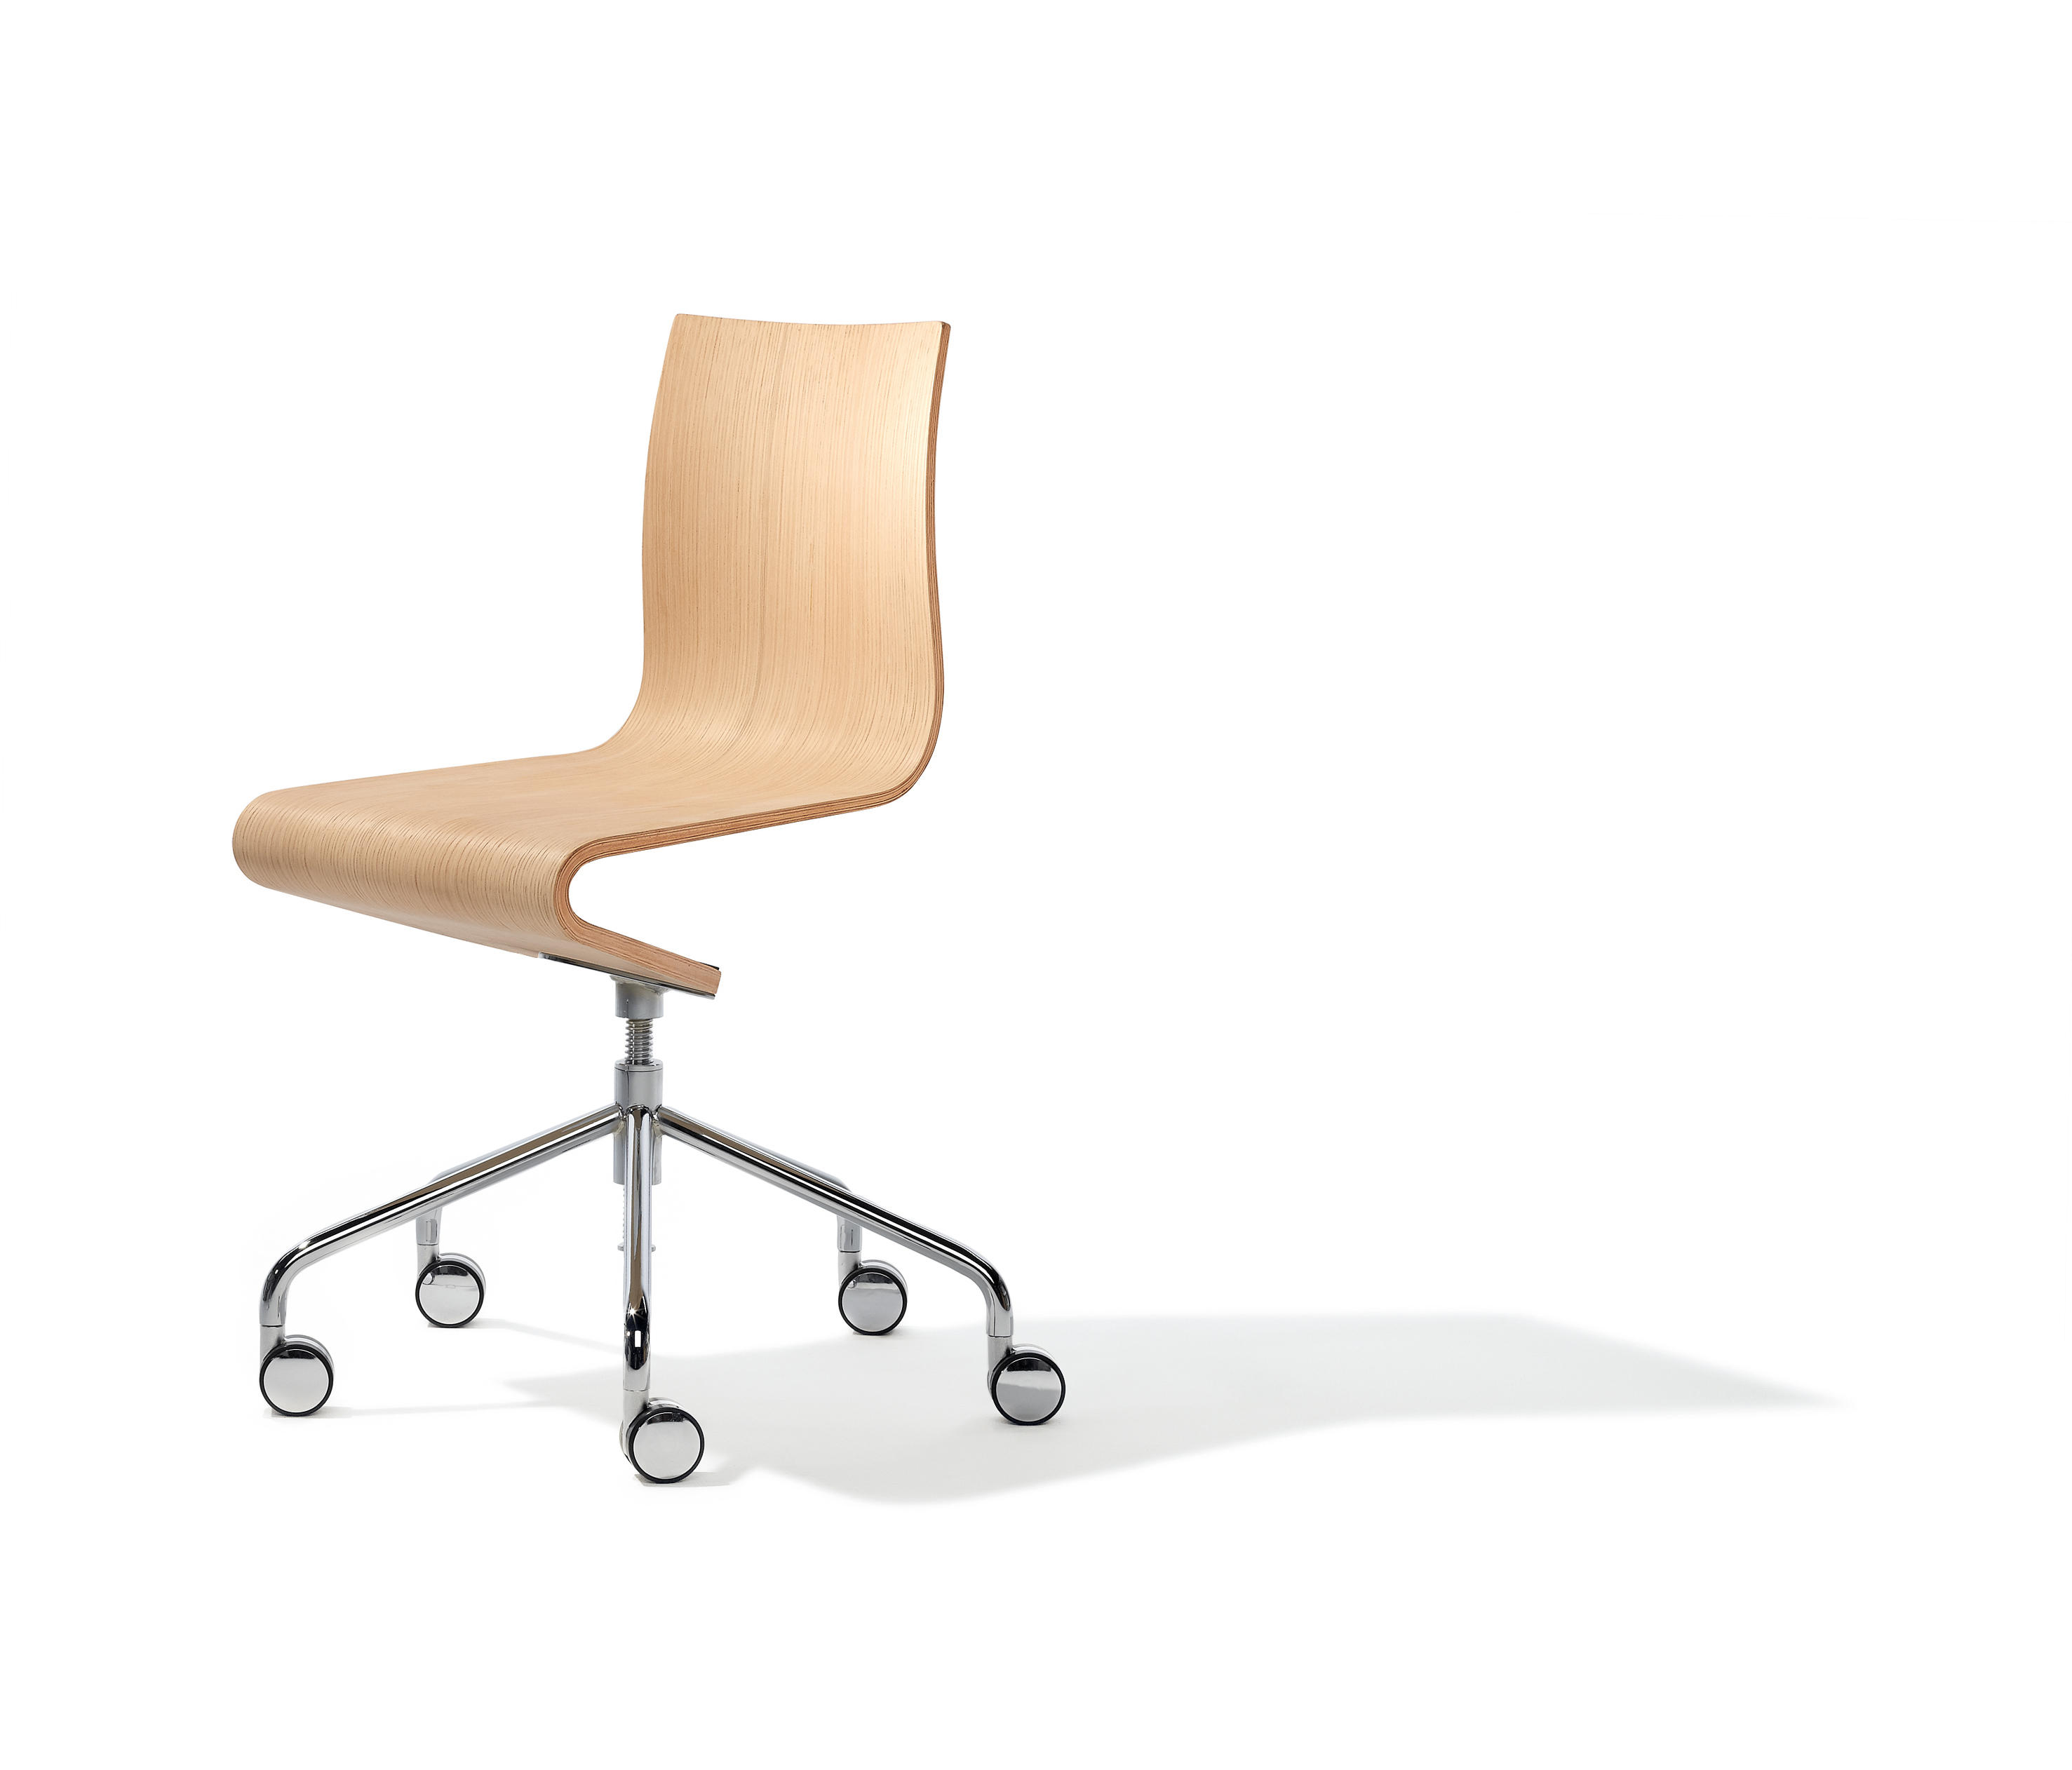 Seesaw Working Chair By Richard Lampert | Office Chairs ...